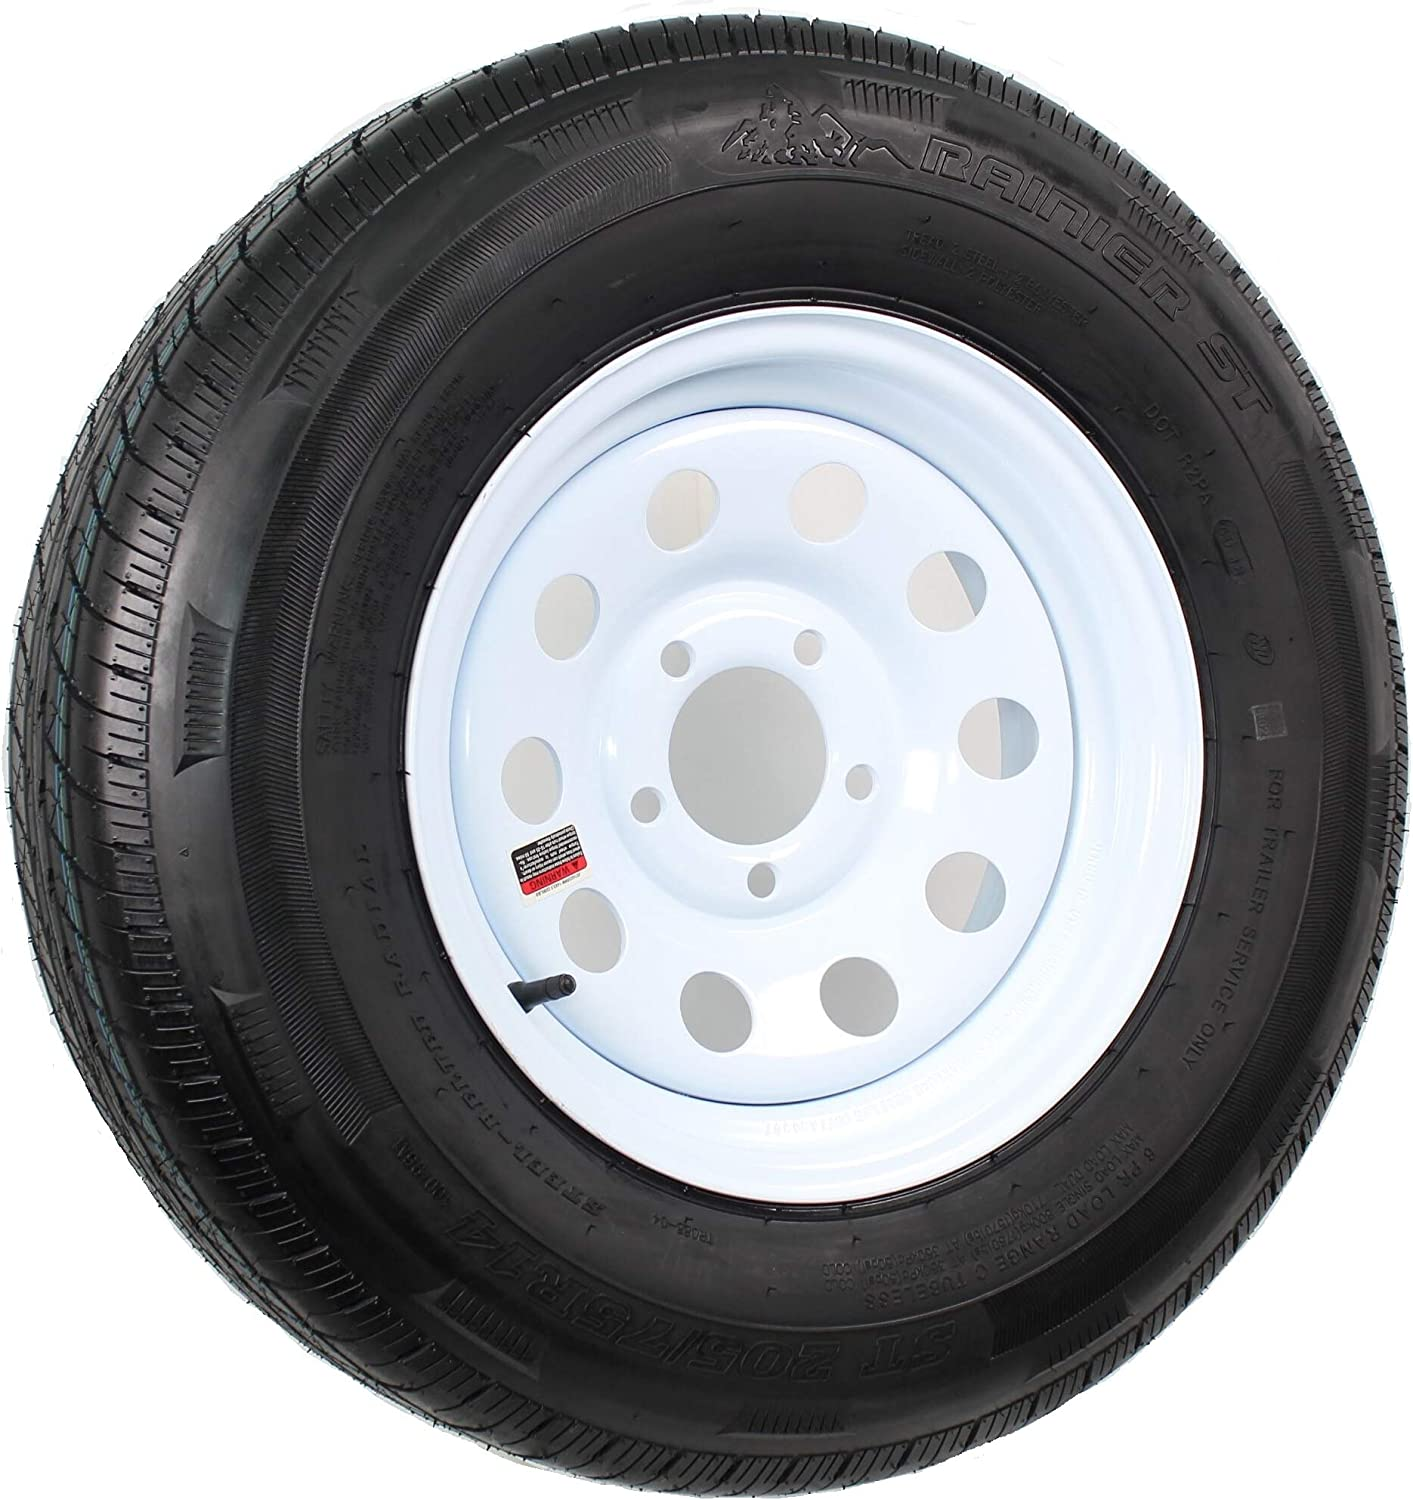 Kenda 14in. Radial Trailer Tire and Wheel Assembly - ST205/75R-14, 5-Hole, Load Range C, Model Number DM205R4C-5MI